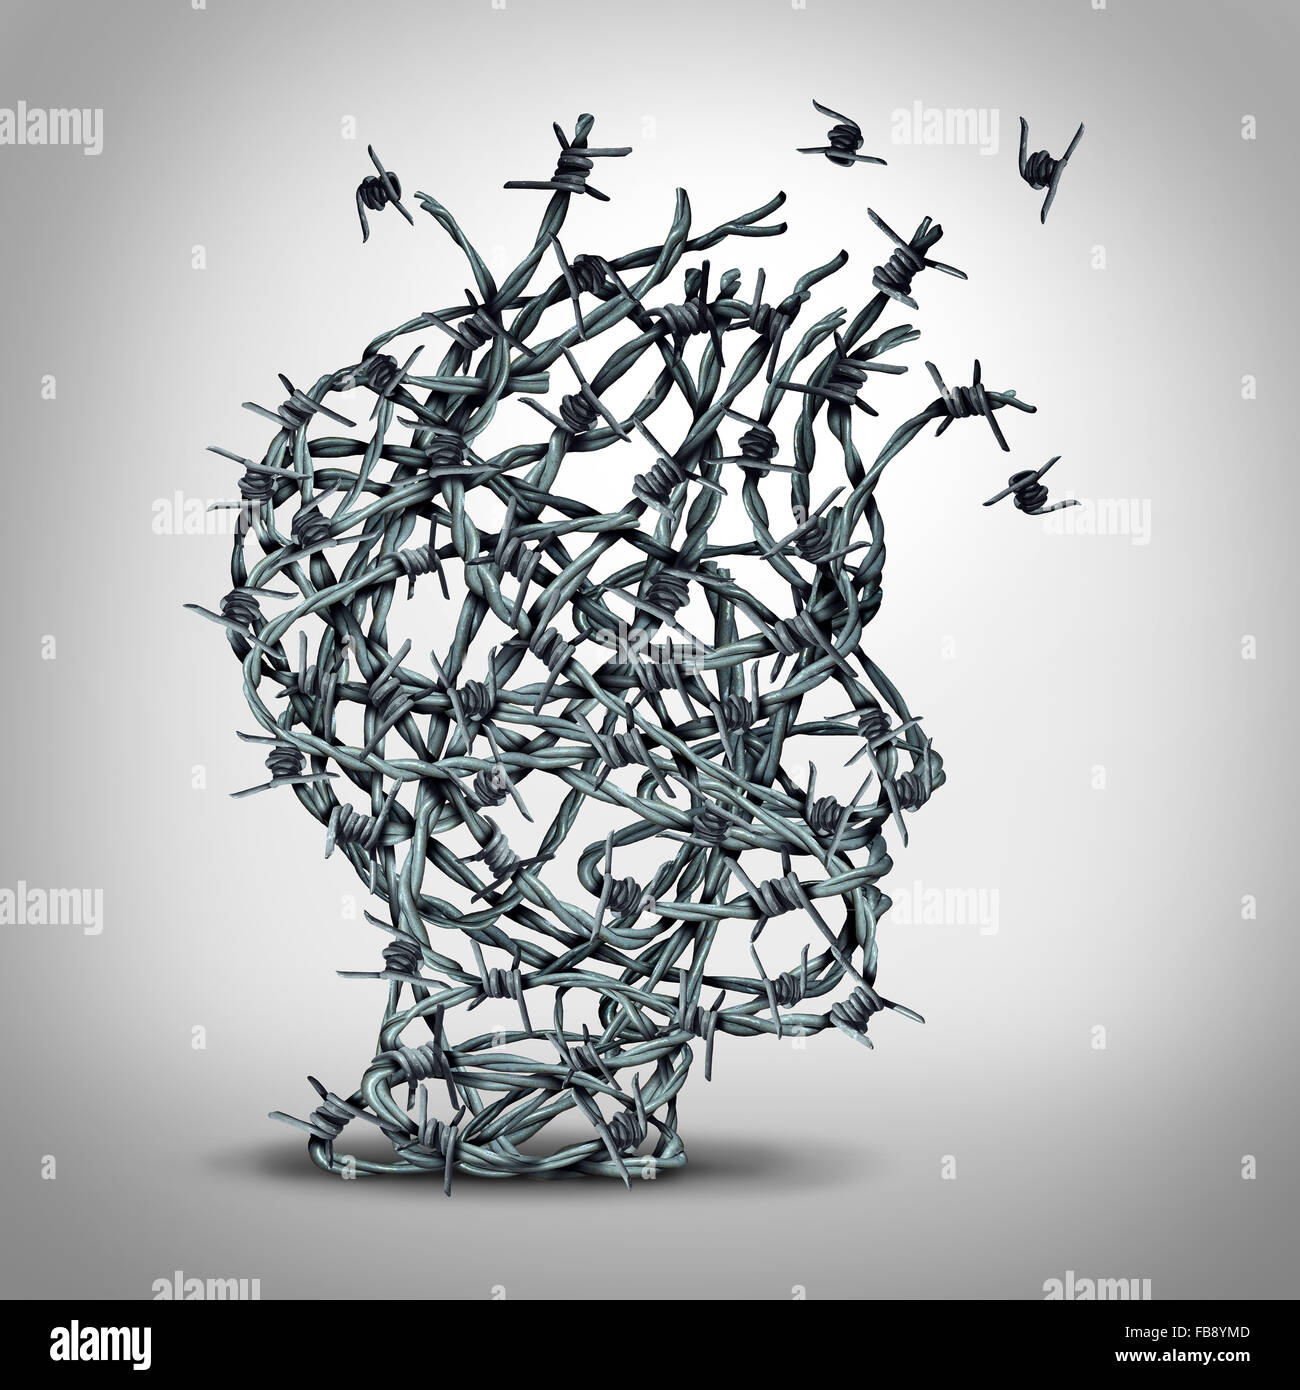 Anxiety solution and freedom from fear and escape from tortured thinking and depression concept as a group of tangled - Stock Image